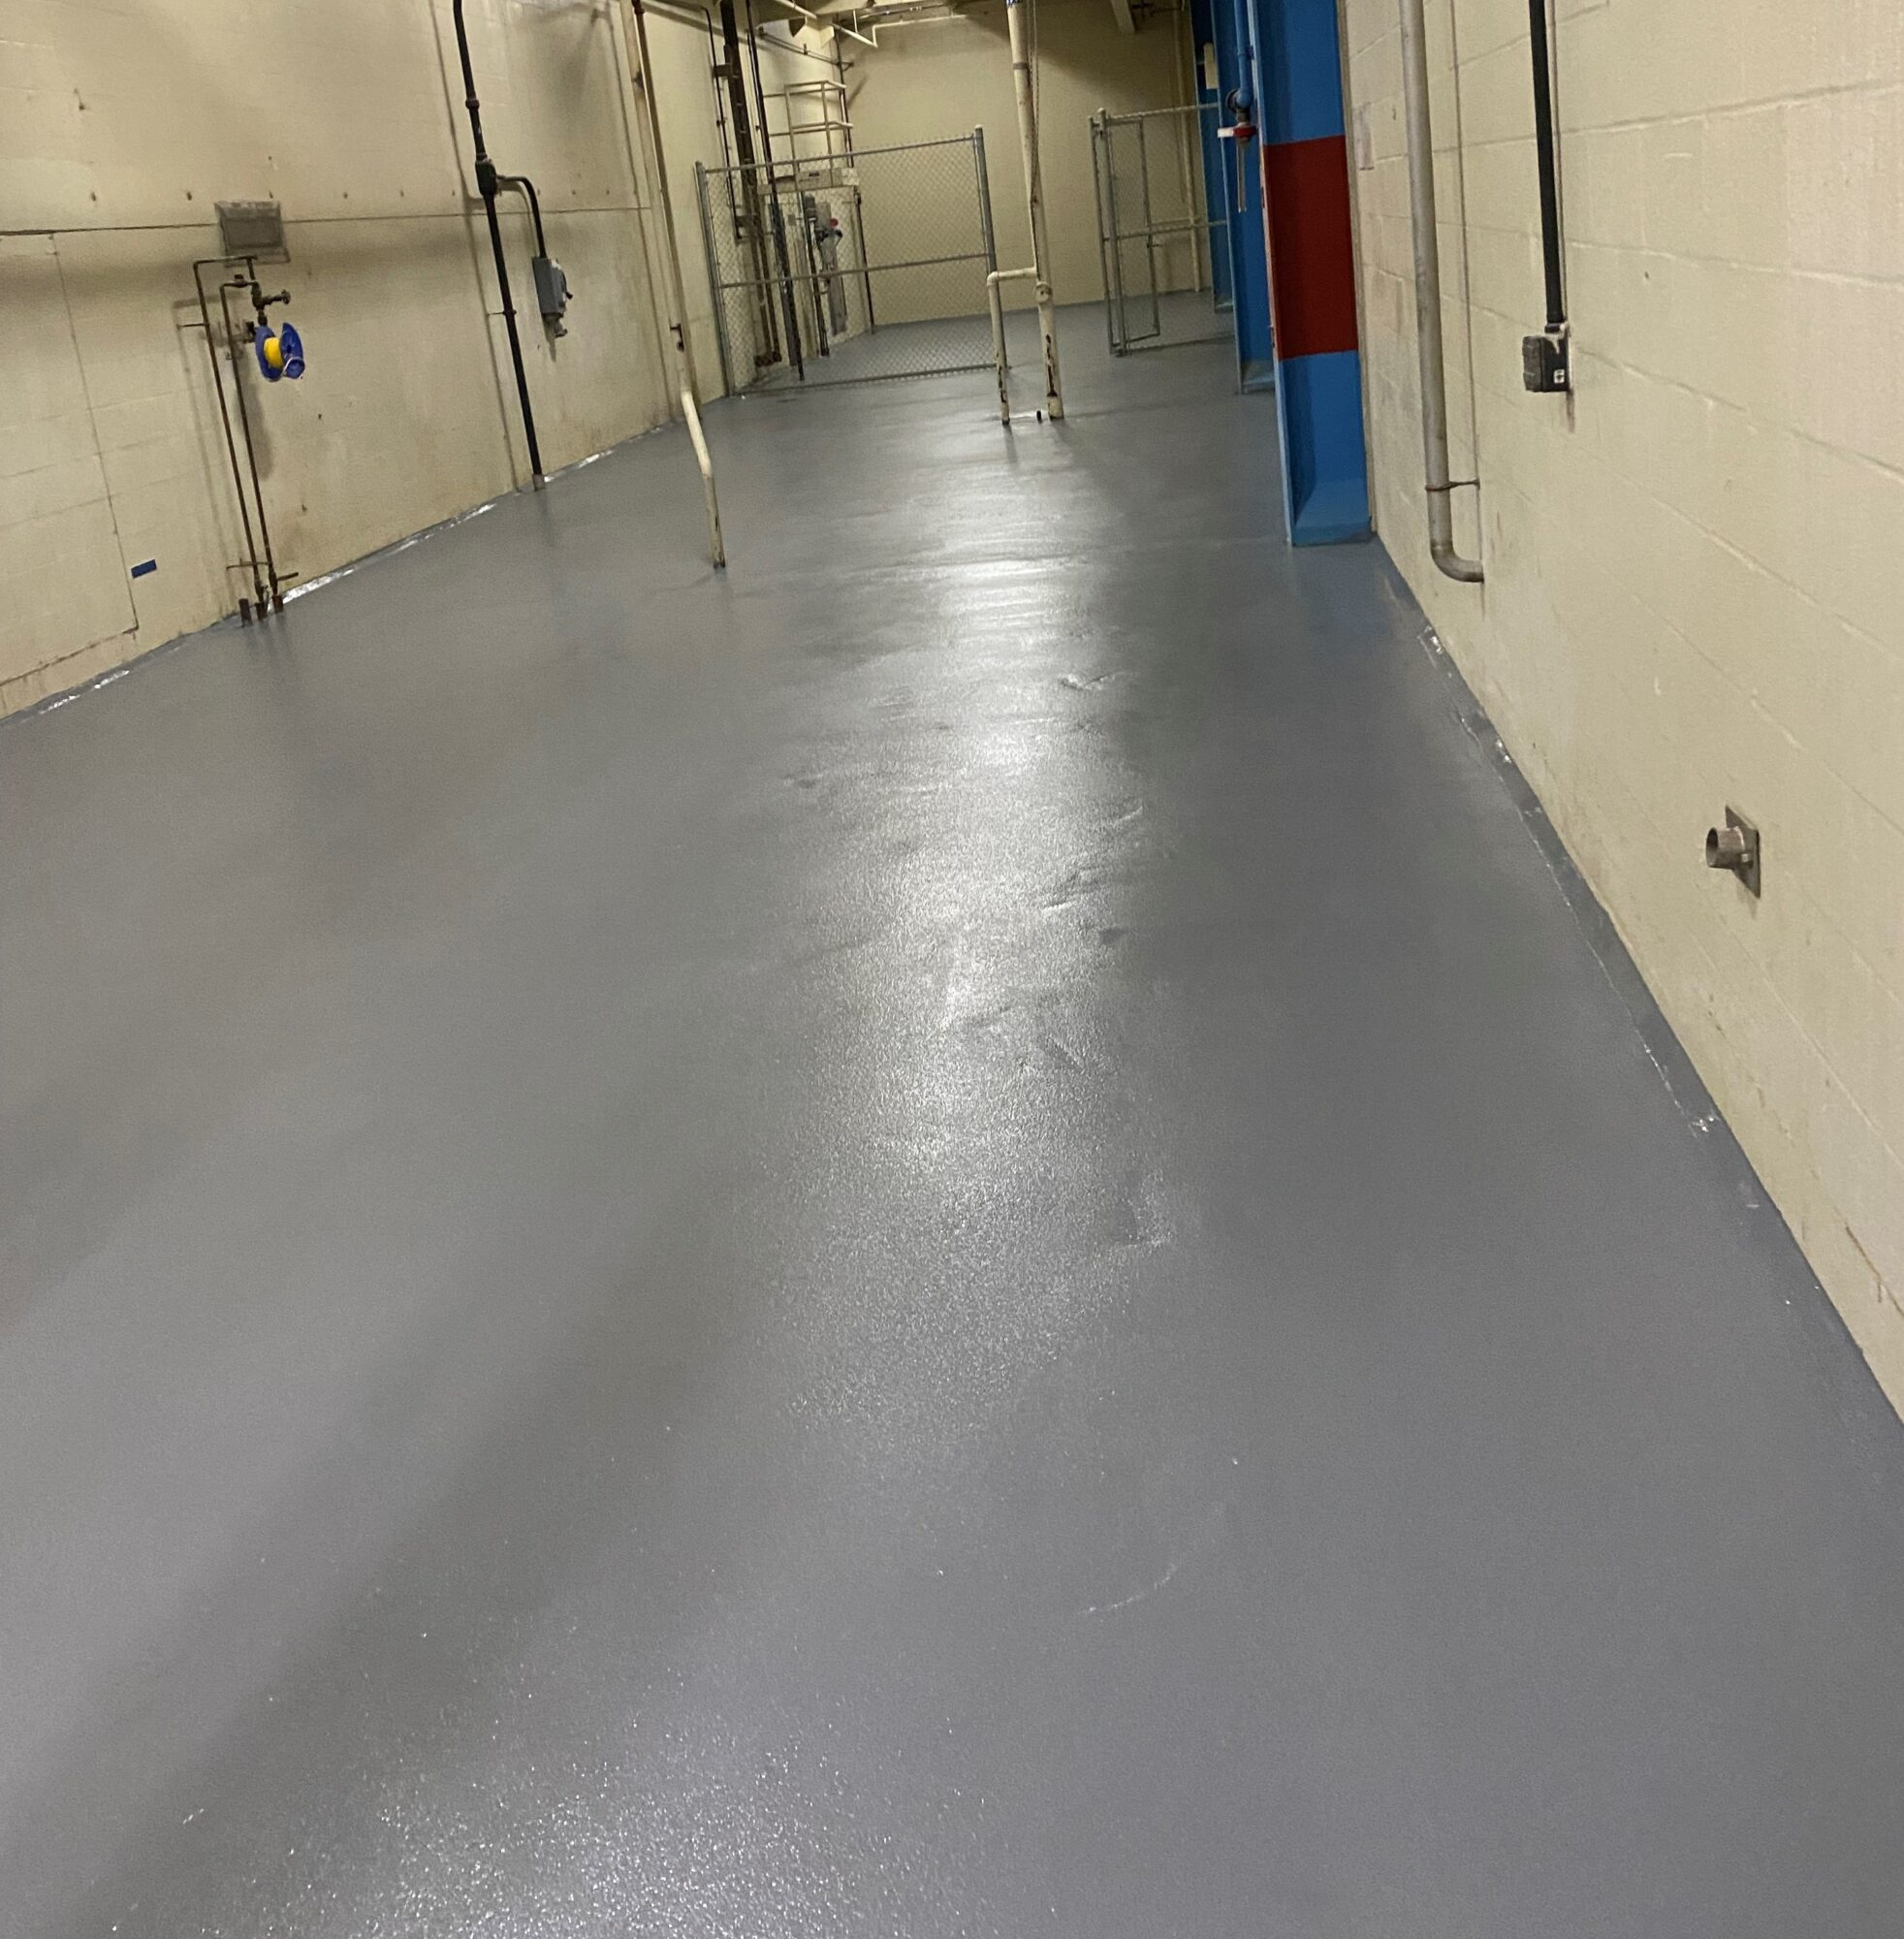 USDA Approved Floor Coatings, Urethane Concrete Cementitious Urethane Coatings, Food & Beverage Manufacturing, Food&BeverageFlooring TeamIA, Industrial Applications Inc., IA30yrs, Jackson TN